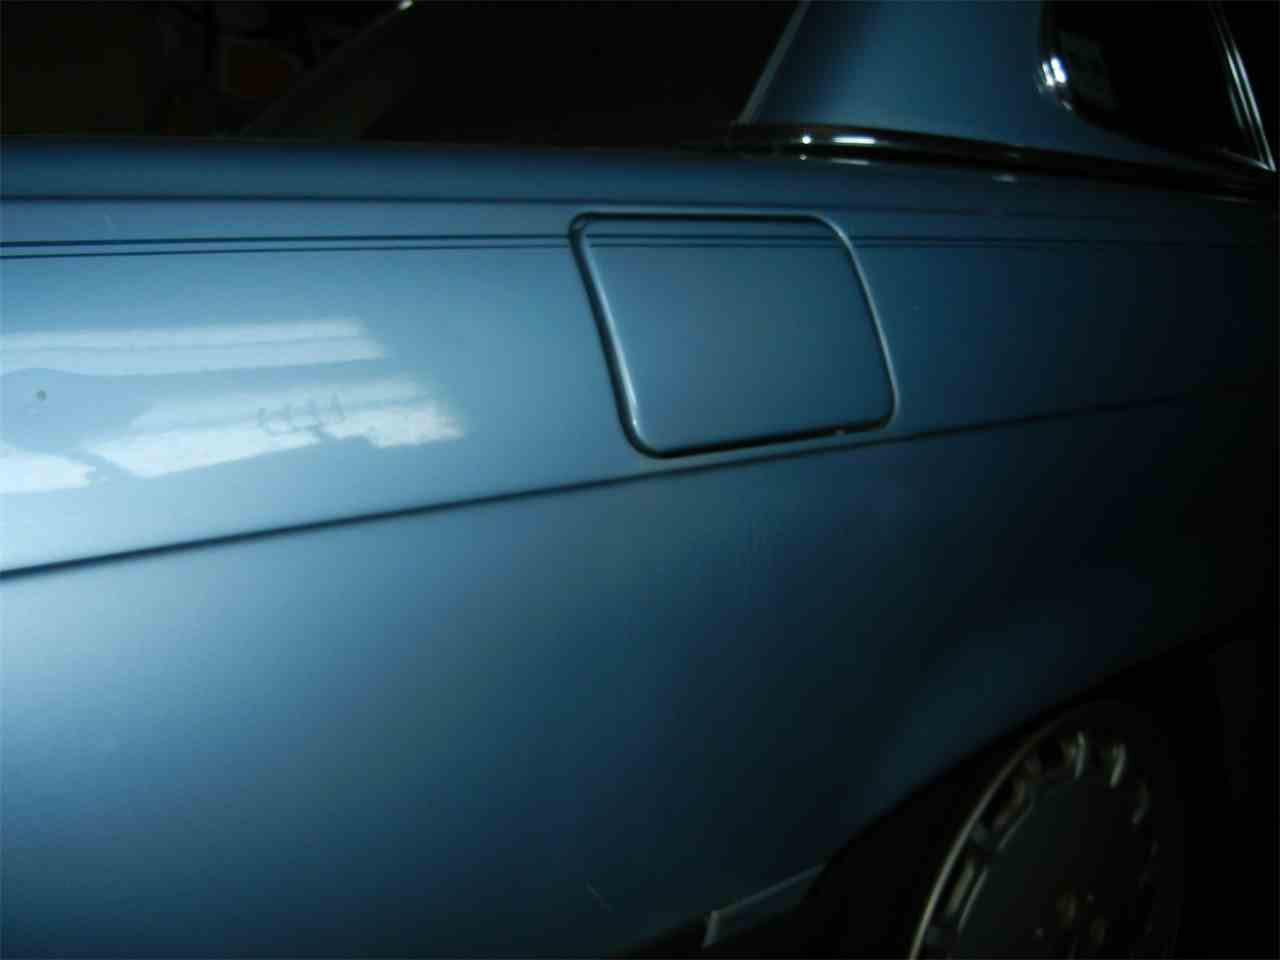 Large Picture of '86 560SL located in DOWNERS GROVE Illinois - $7,900.00 Offered by a Private Seller - JP35